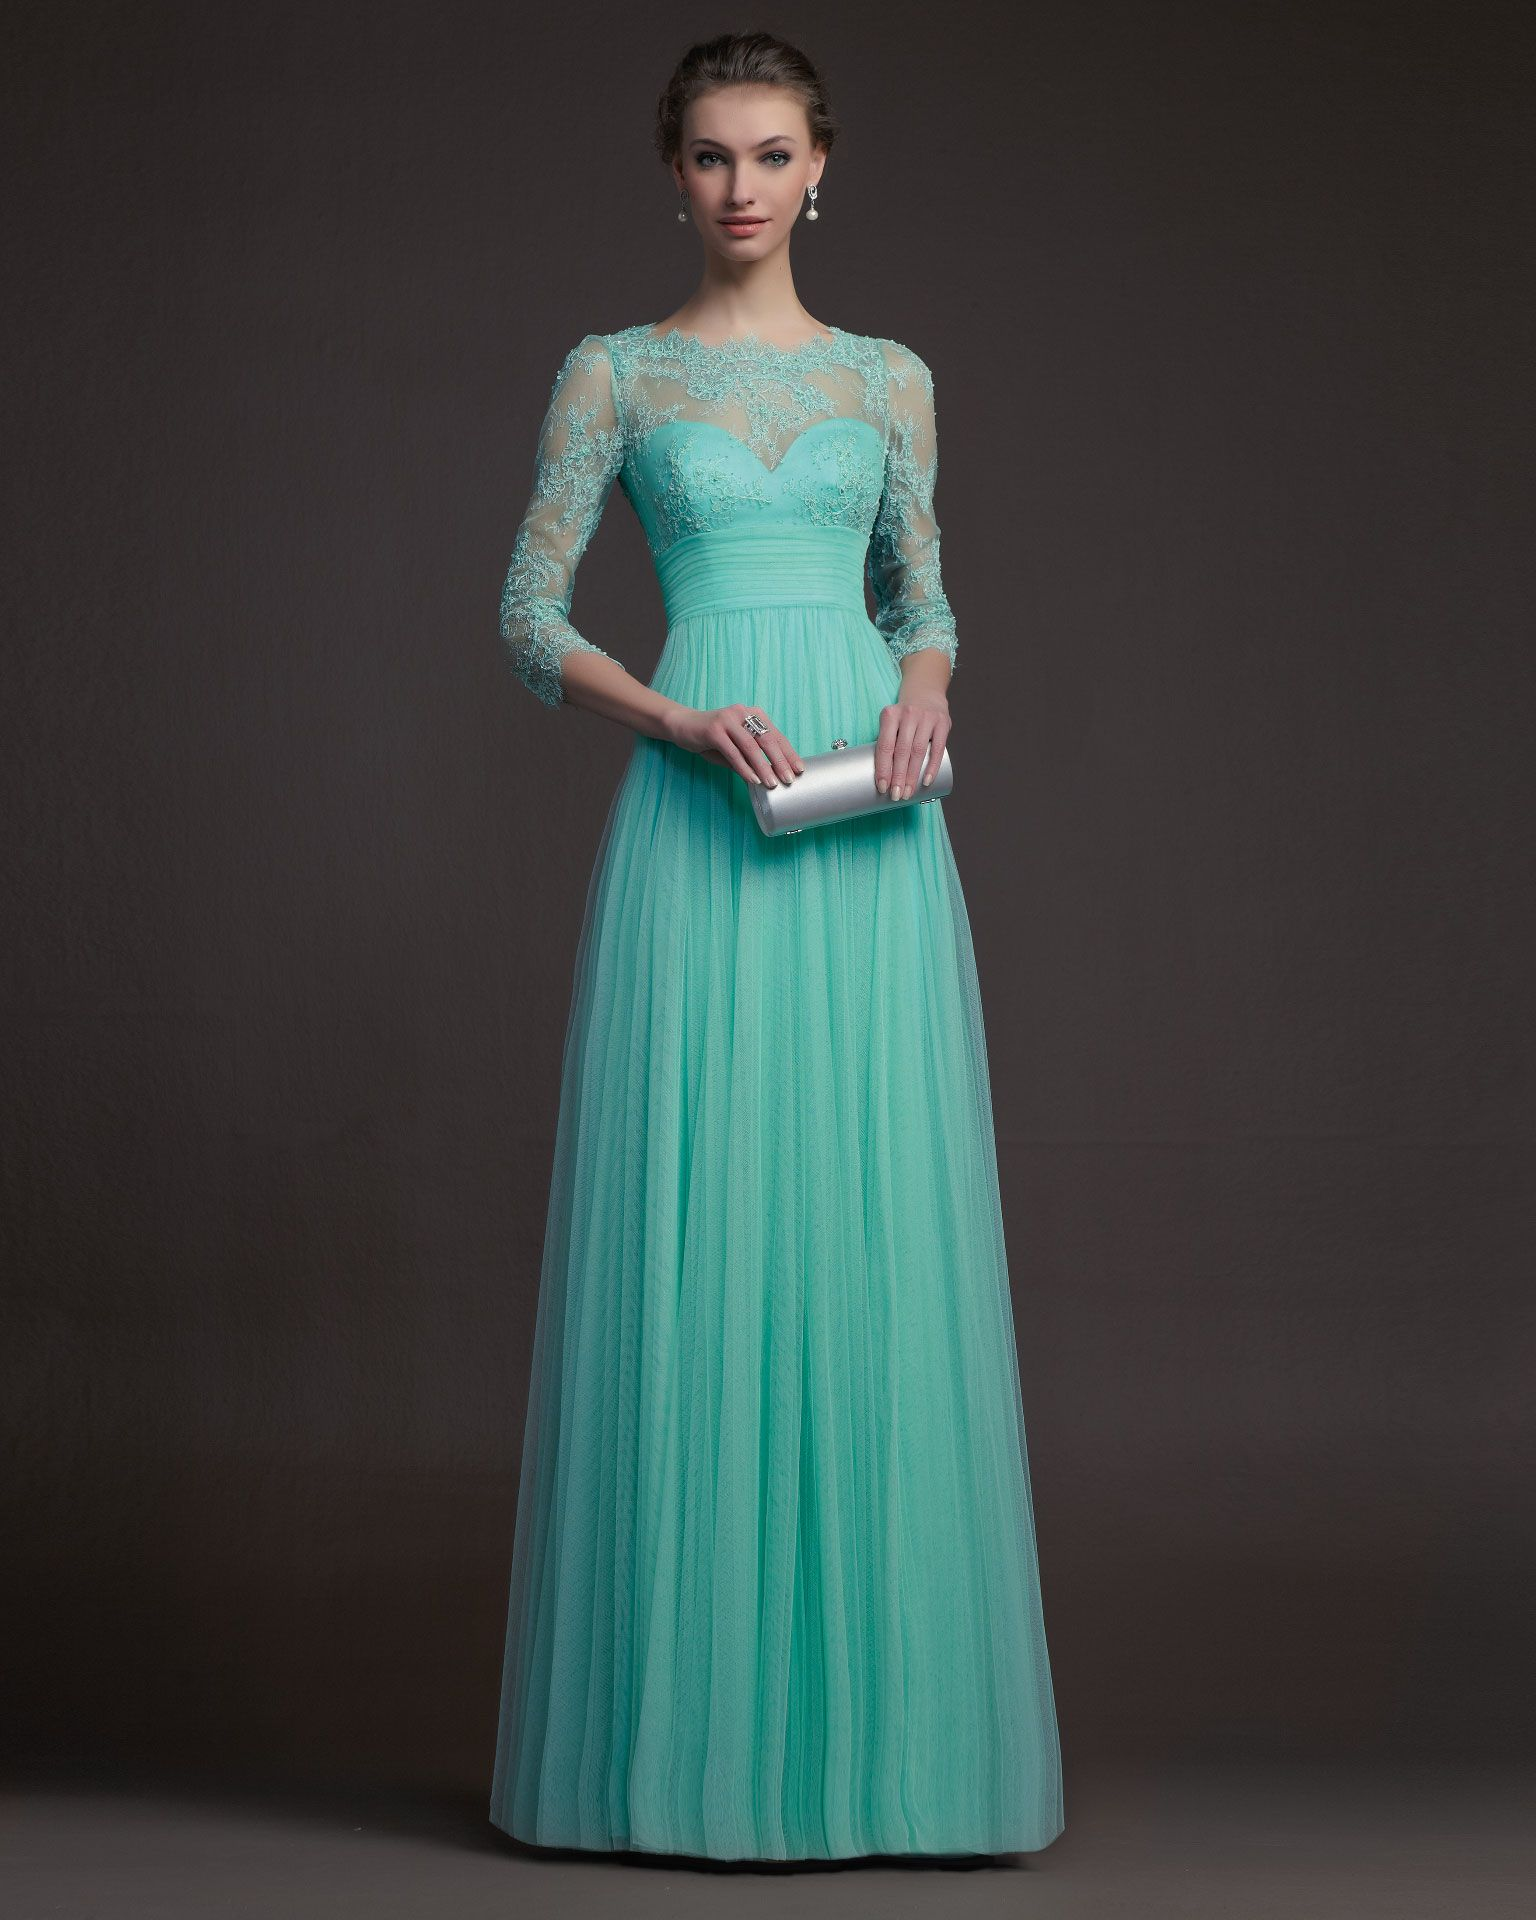 35 Beautiful Evening Dresses For Women | Aire barcelona, Dress prom ...